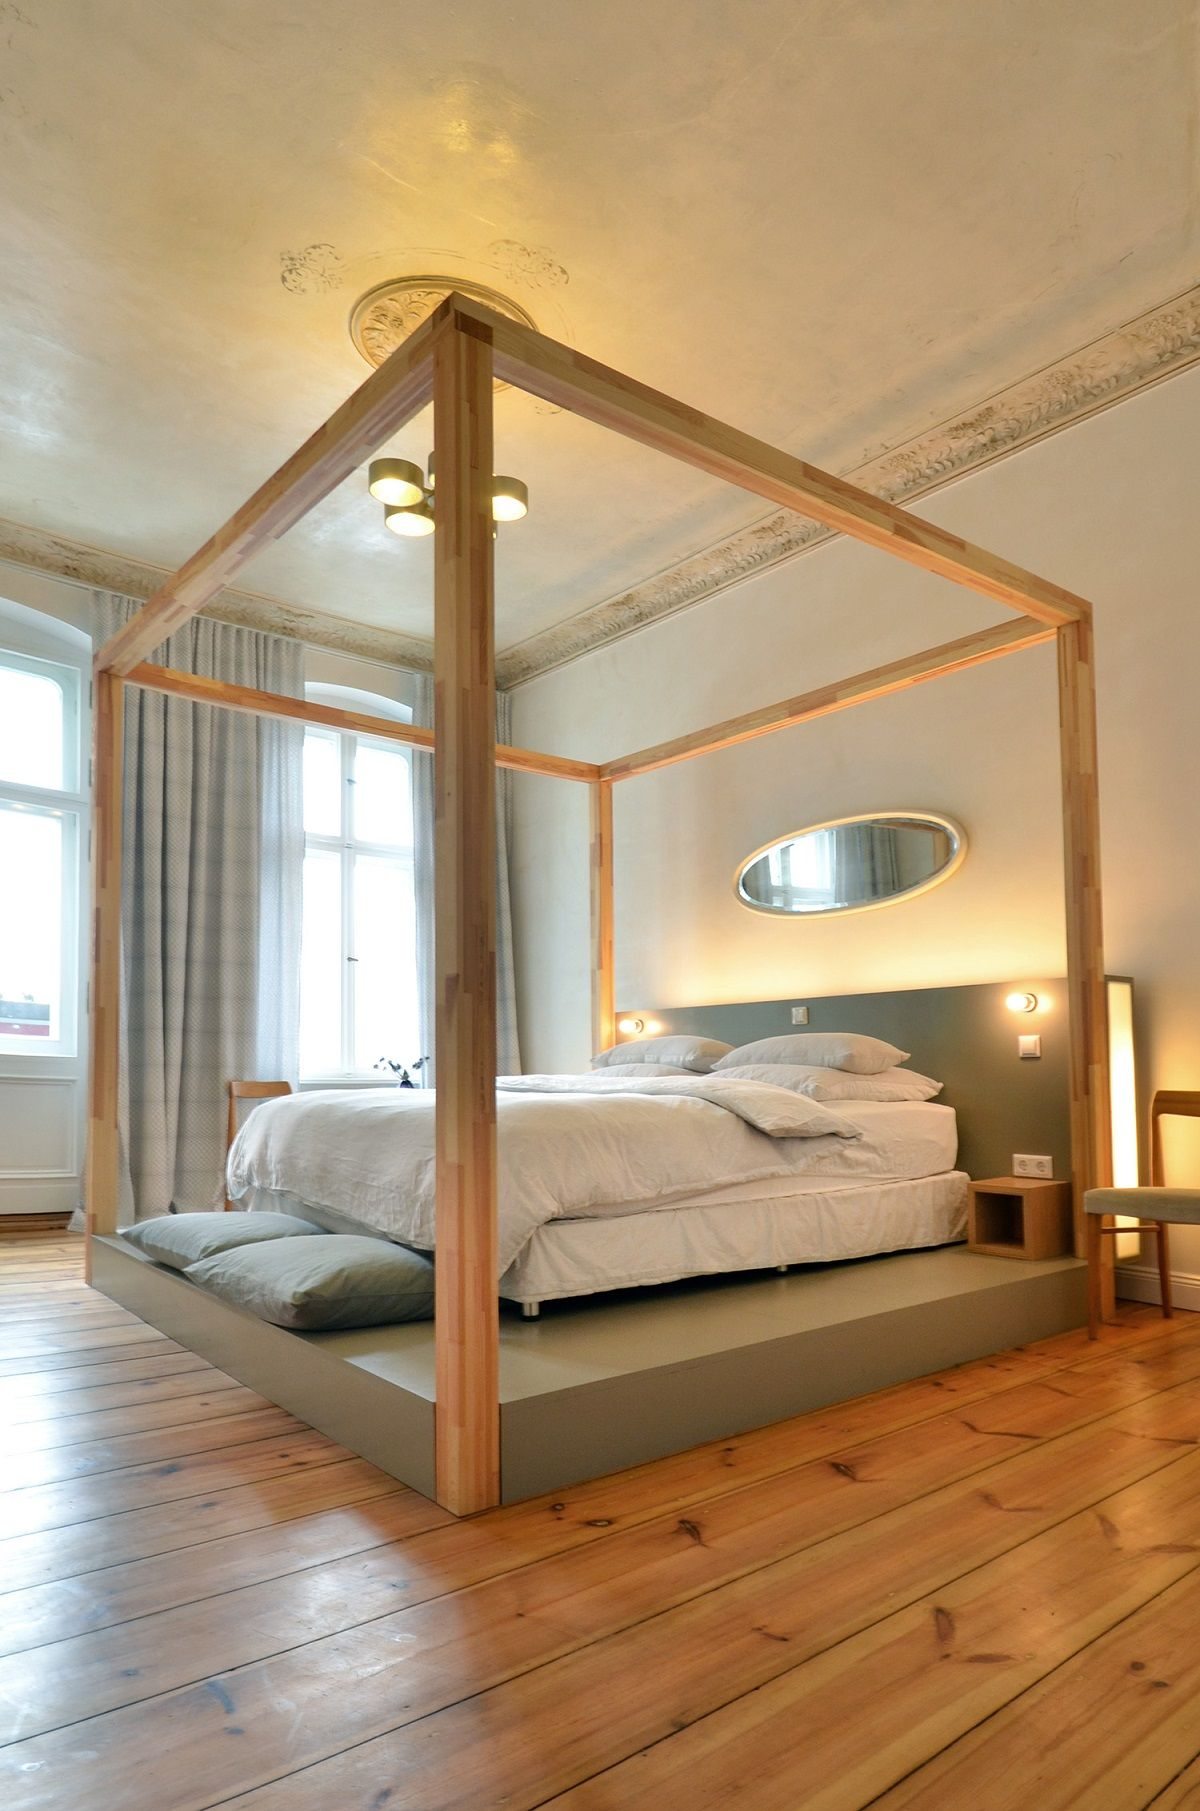 Top 10 Cool Berlin Stays From a fabulous... | Wohnidee: Schlafzimmer ...